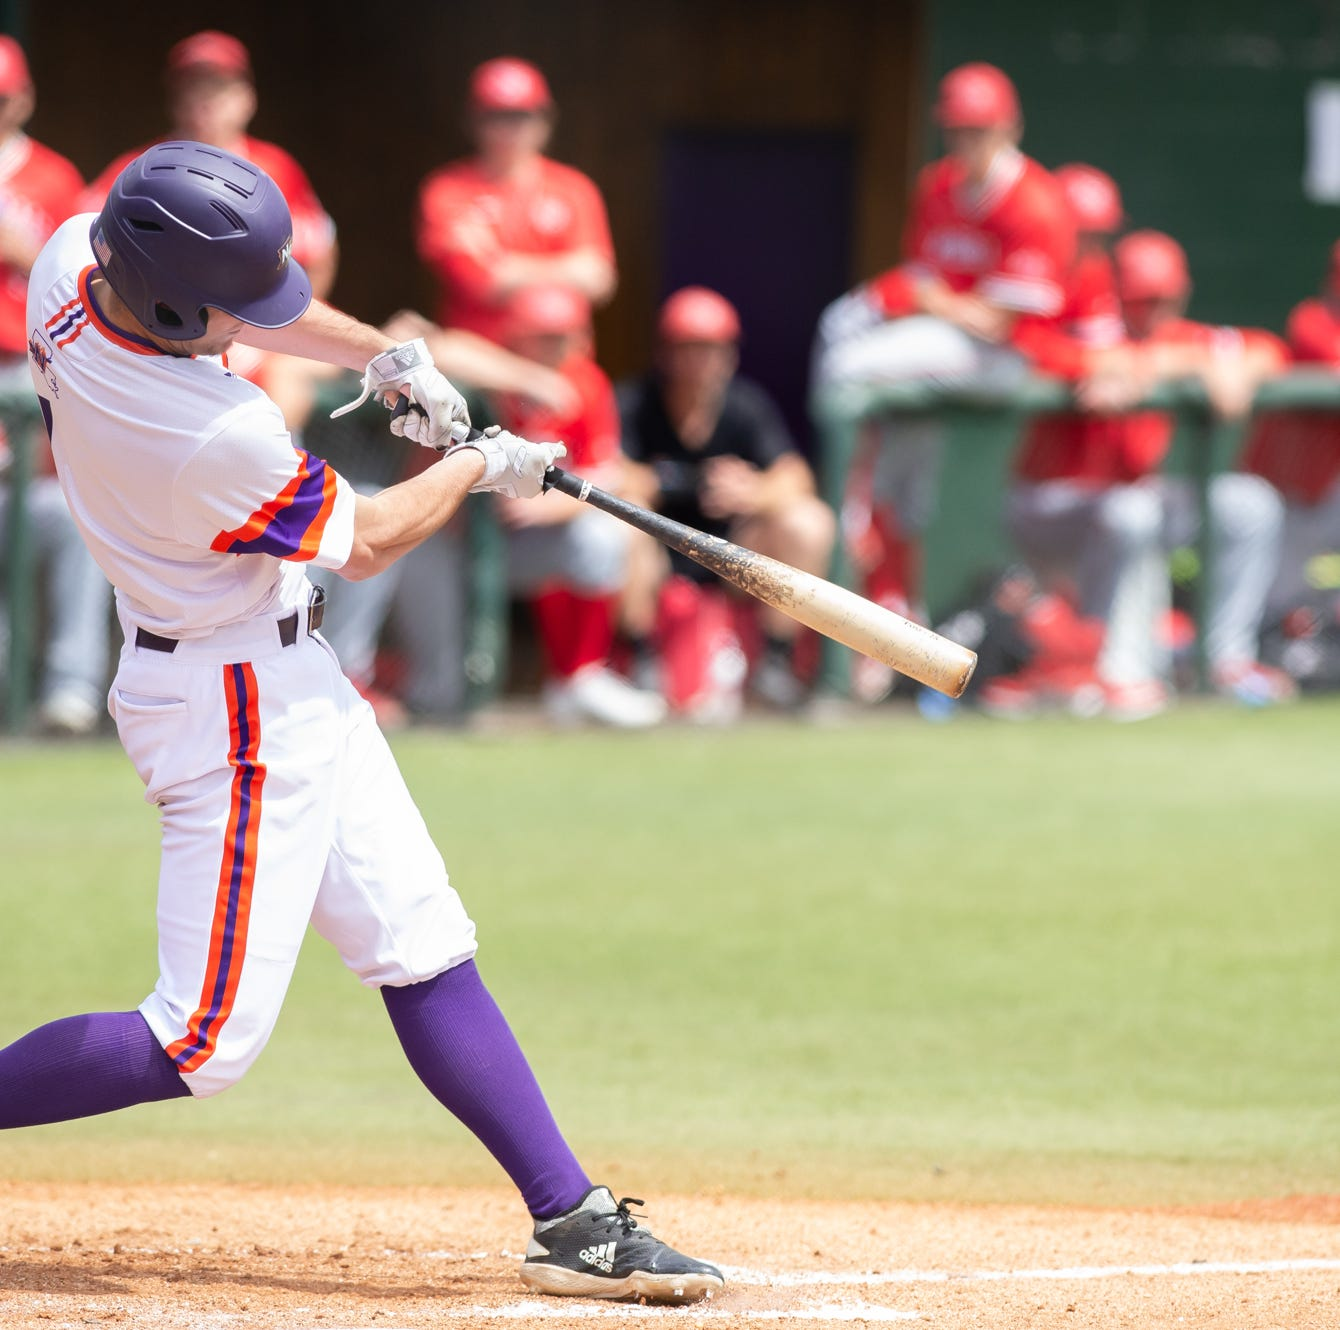 College roundup: NSU baseball earns series vs. Lamar